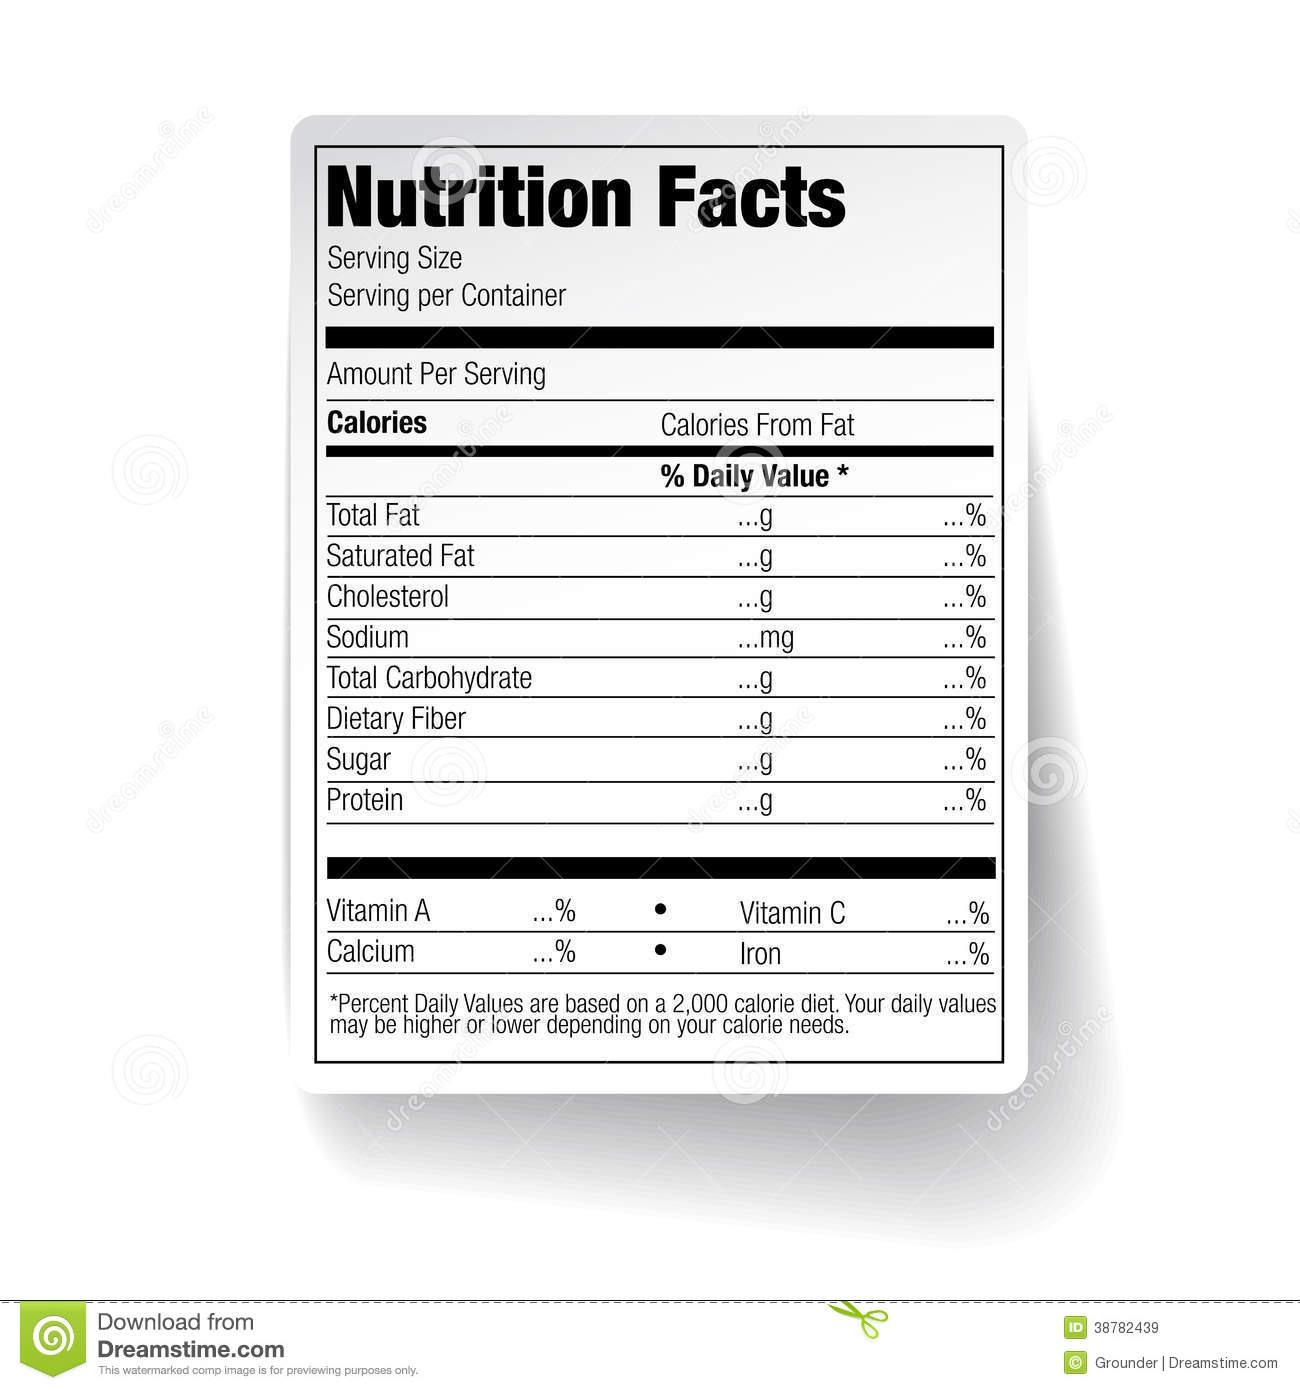 25 Images Of Empty Nutrition Label Vanscapital